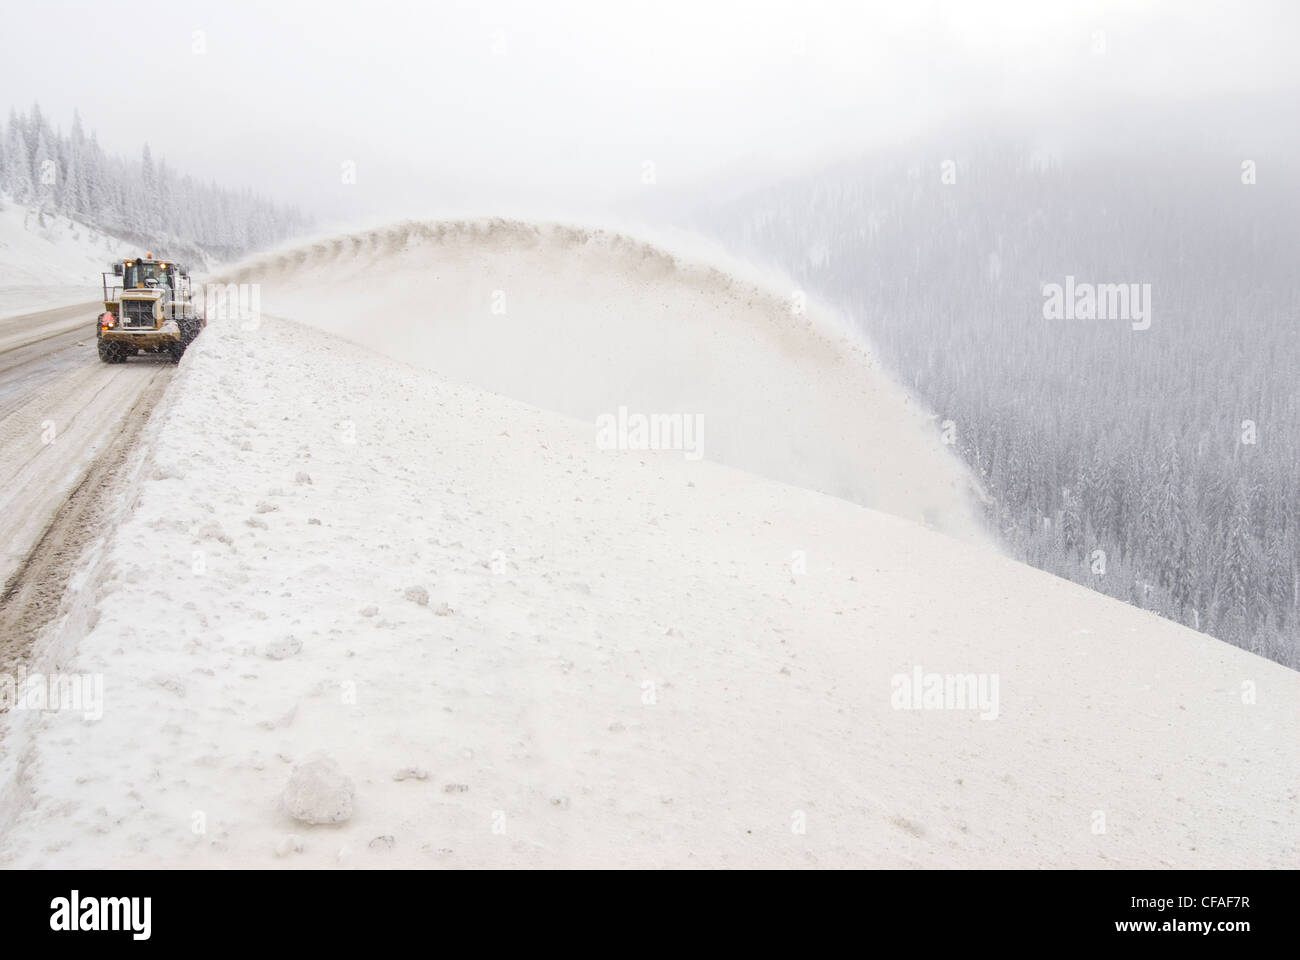 Highway maintenance crew clears road large snow - Stock Image